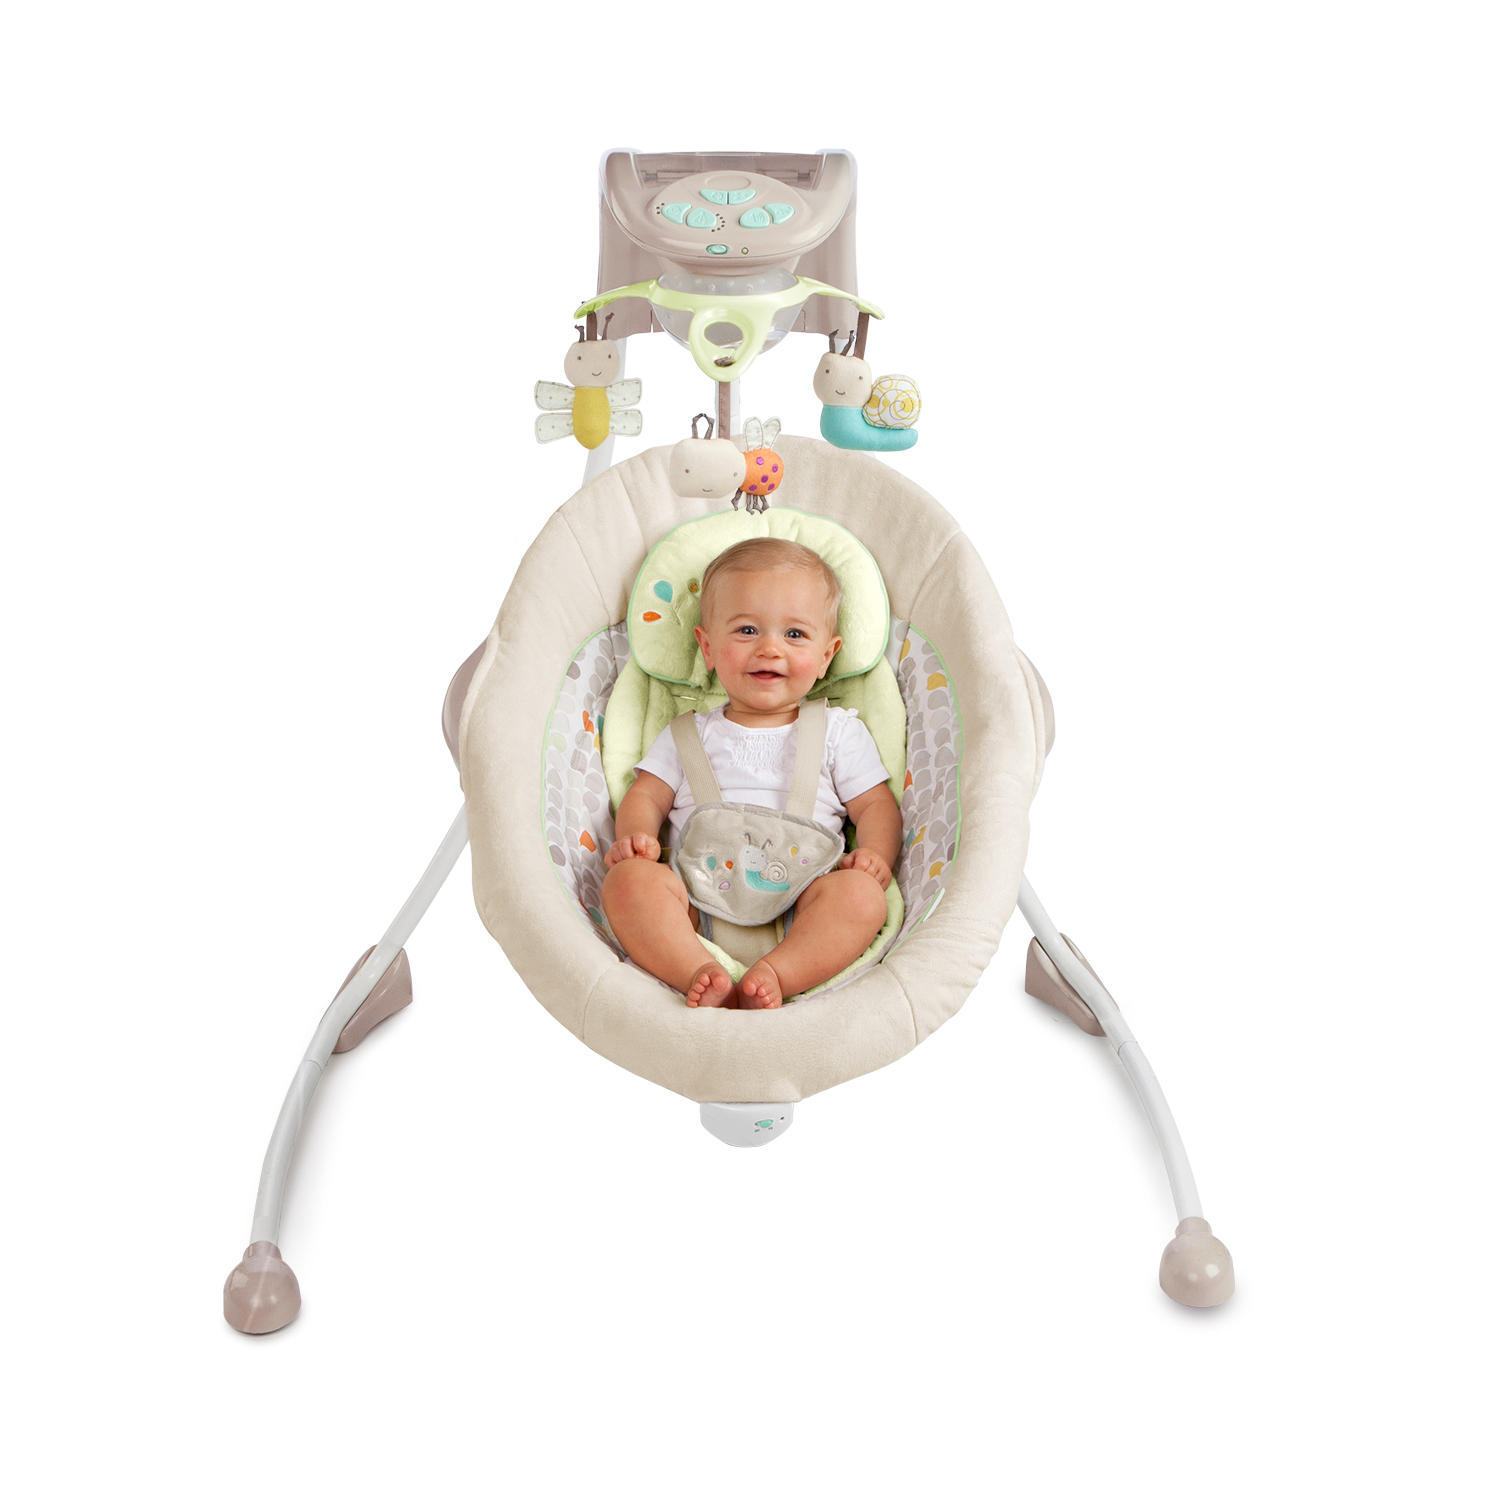 InLighten Cradling Swing™ - Seneca™